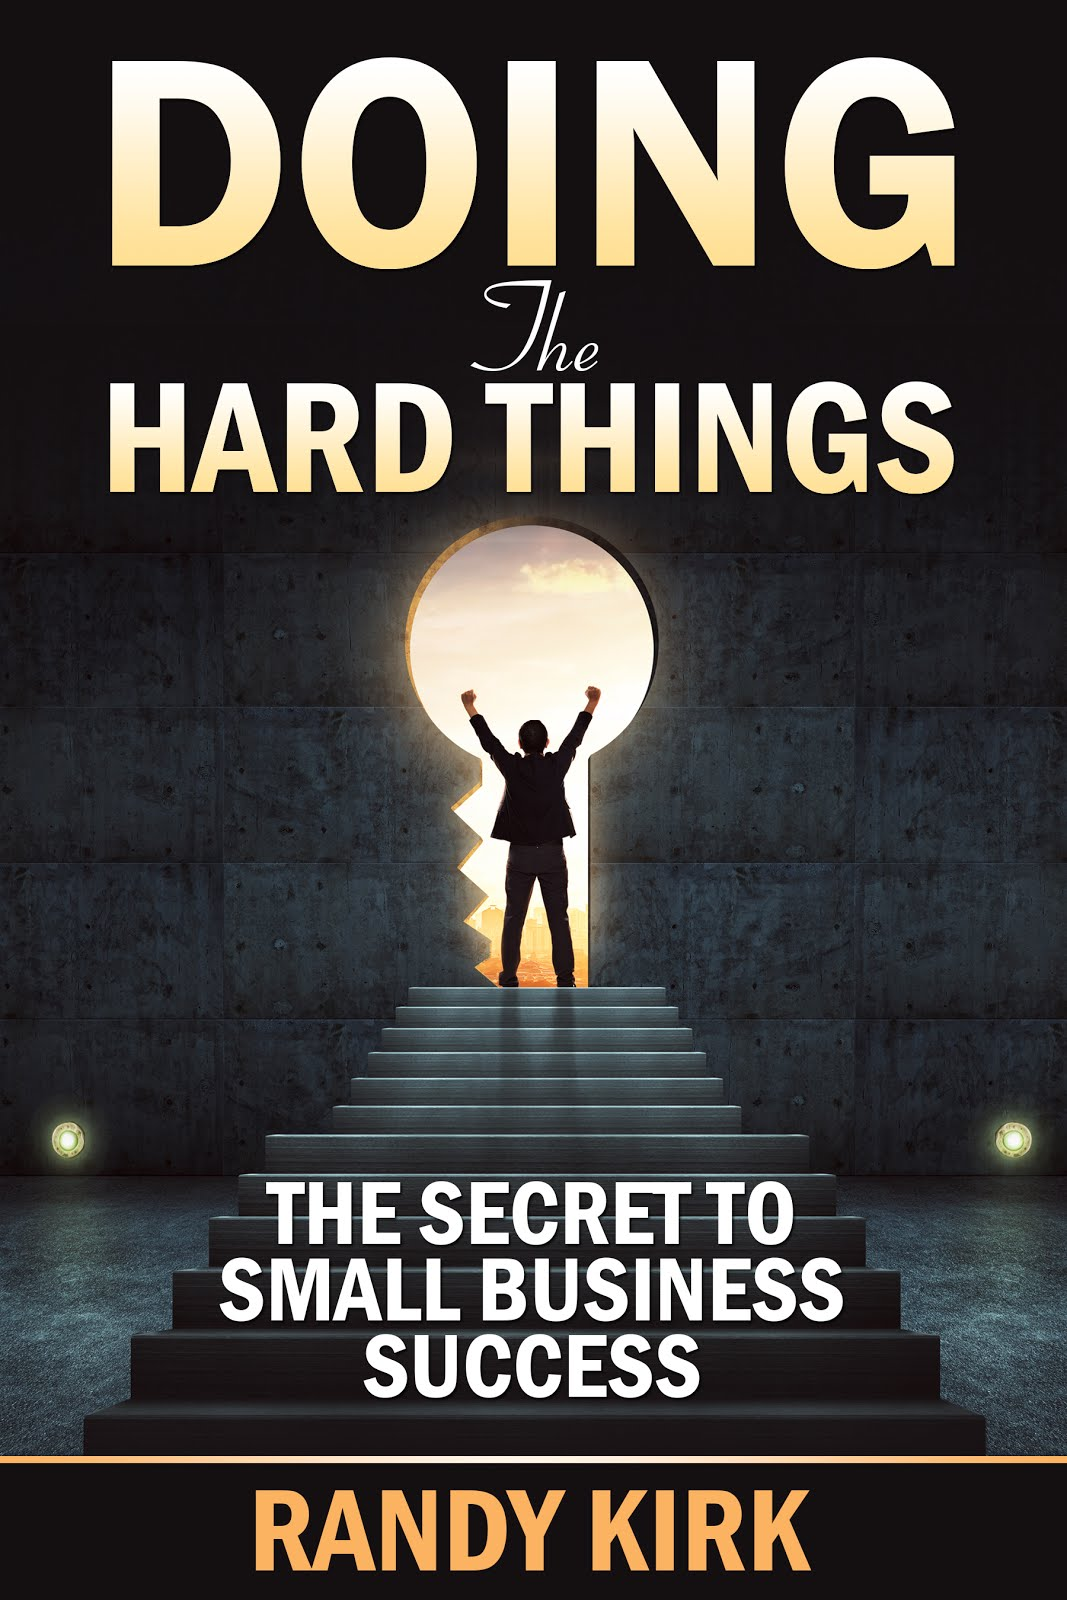 Get Your Free eBook - Doing the Hard Things